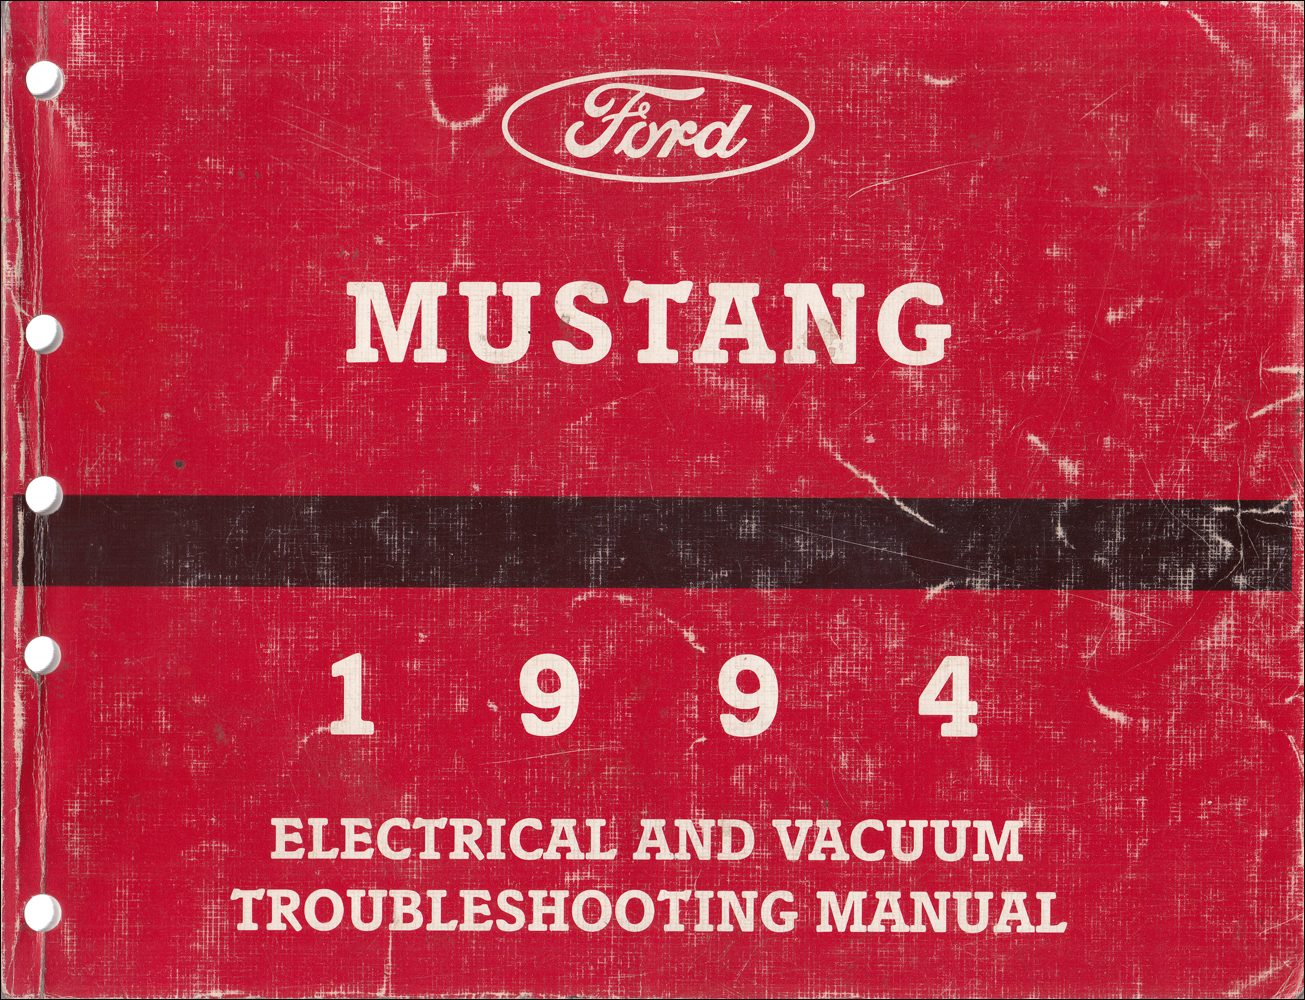 Ford Mustang Wiring Diagram 89 Mustang Power Lock Wiring Diagram Ford